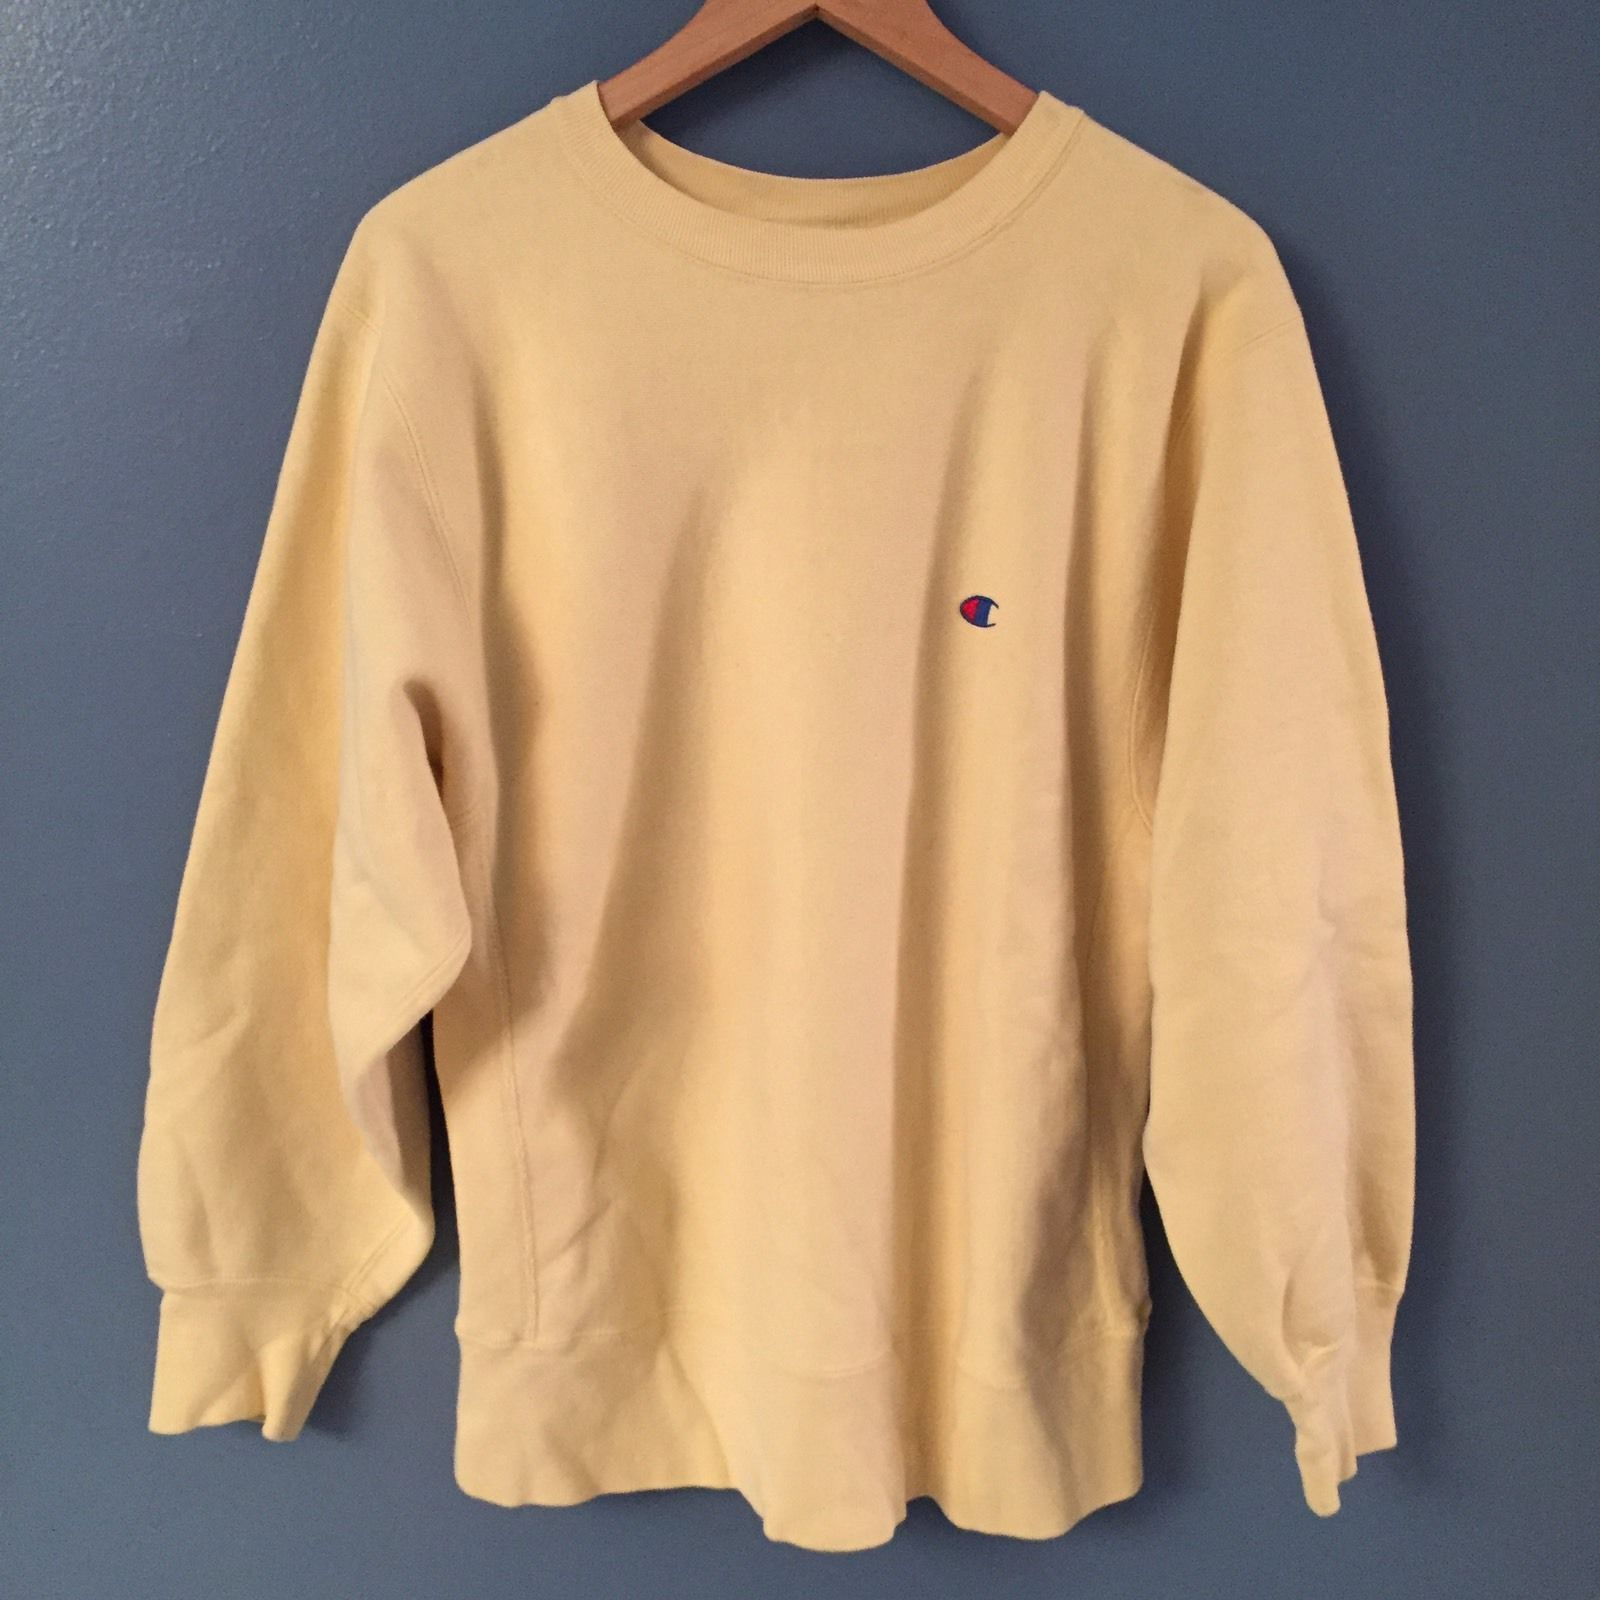 Vintage Rare Light Yellow Cream Champion Reverse Weave Sweatshirt Mens  Large 90s 70f8b647c18b